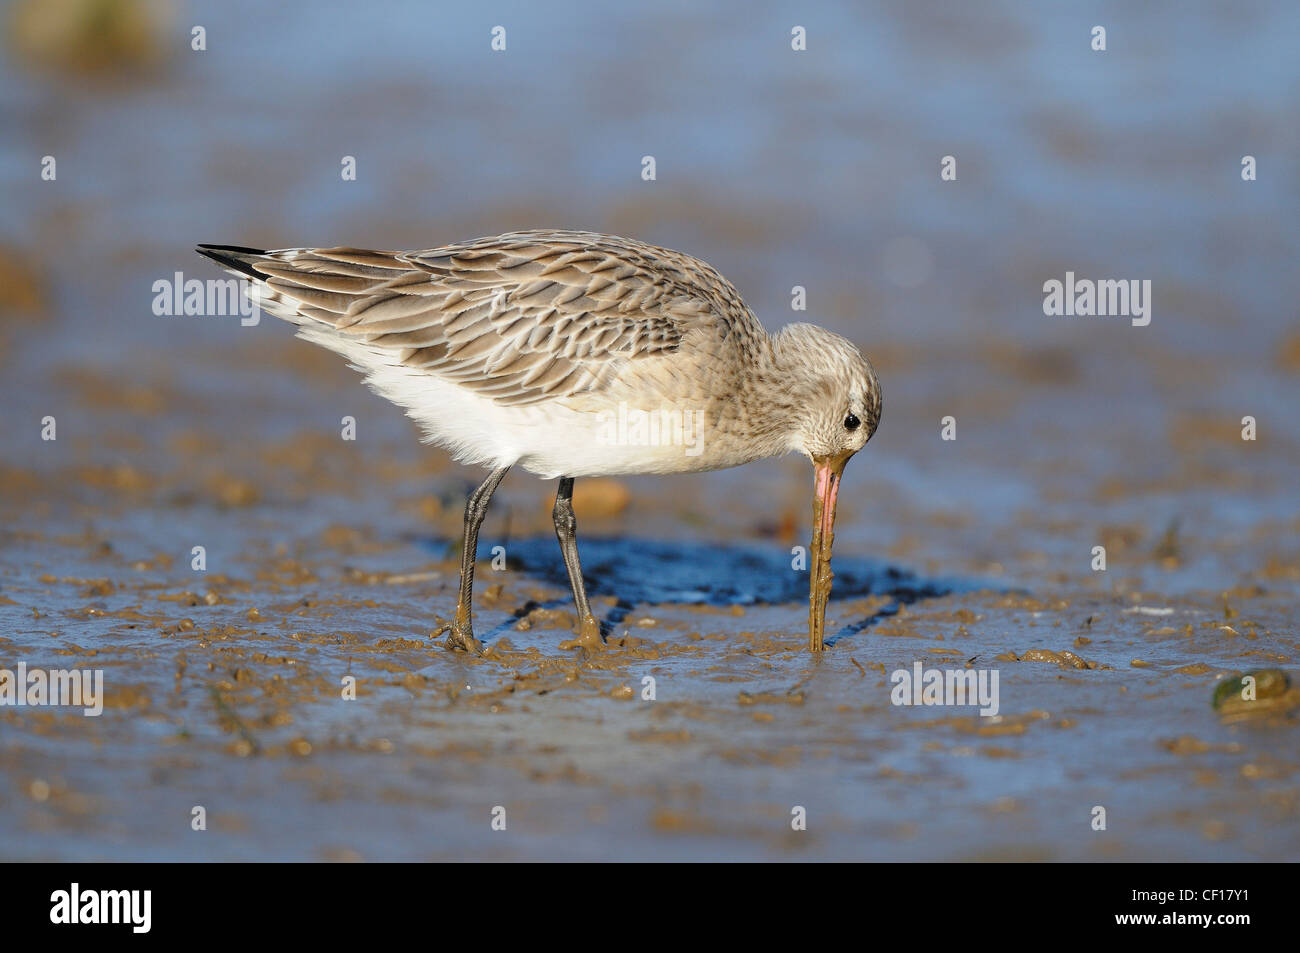 Bar tailed godwit, limosa lapponica, probing for invertebrates in inter tidal area, February - Stock Image